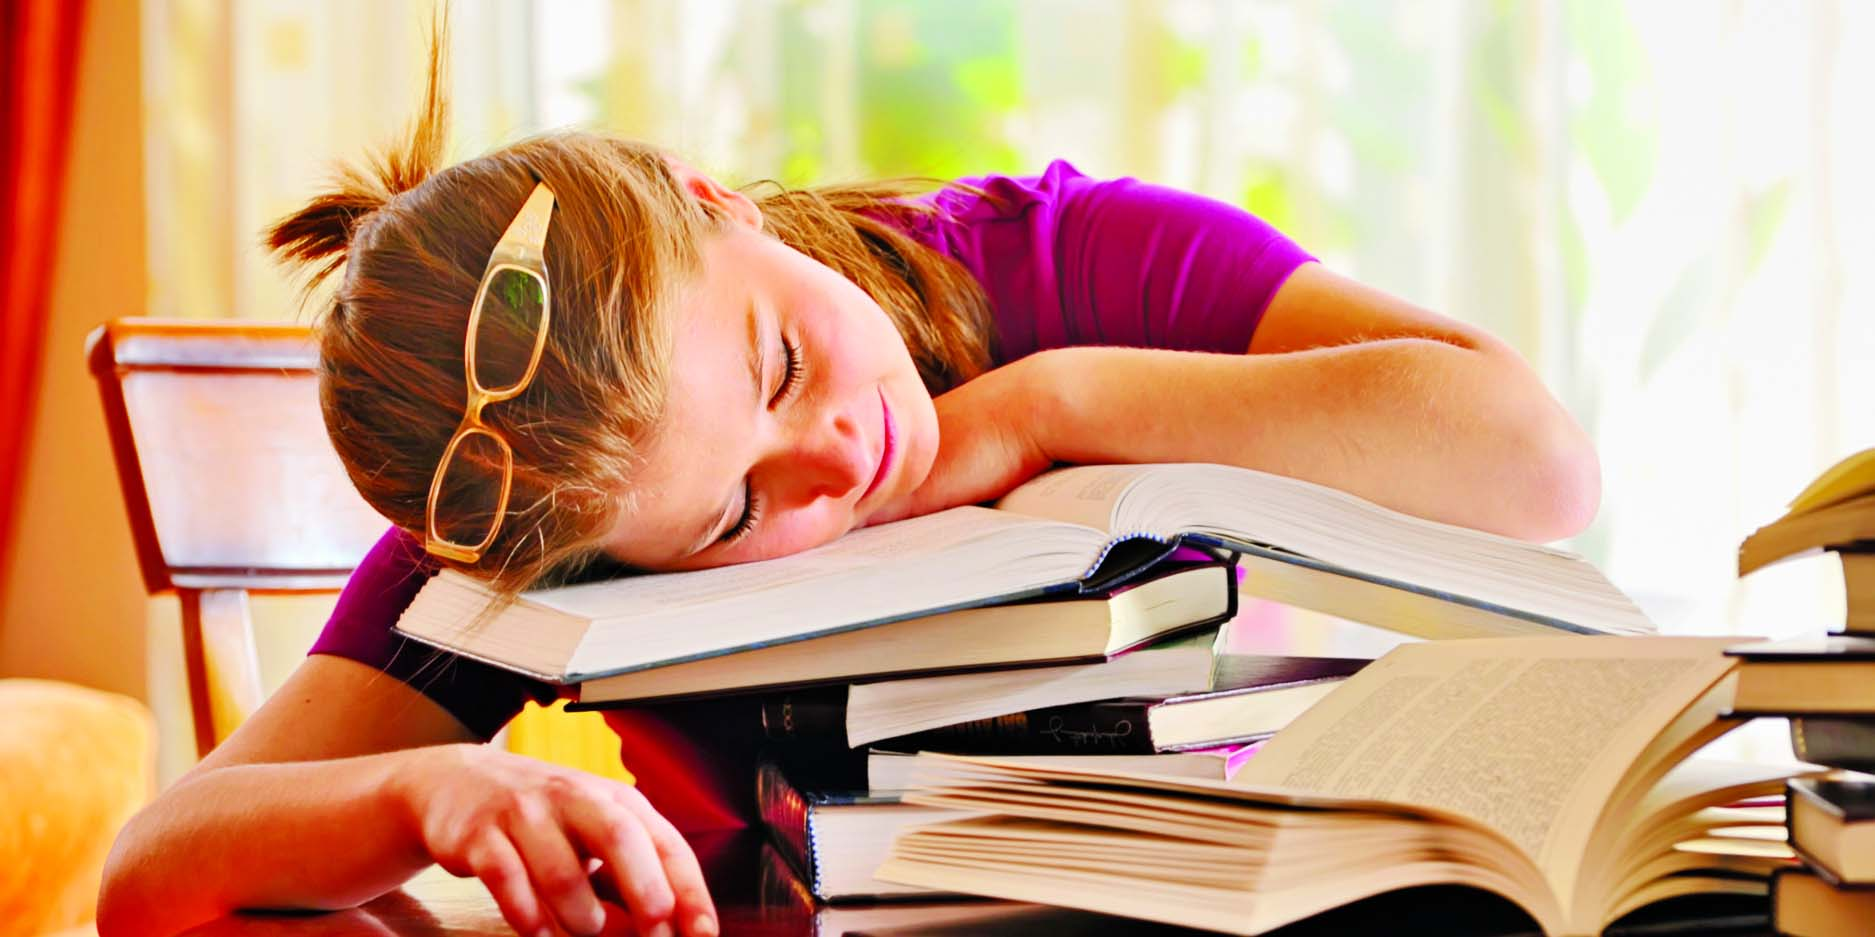 Lonely teenagers more prone to poor sleep